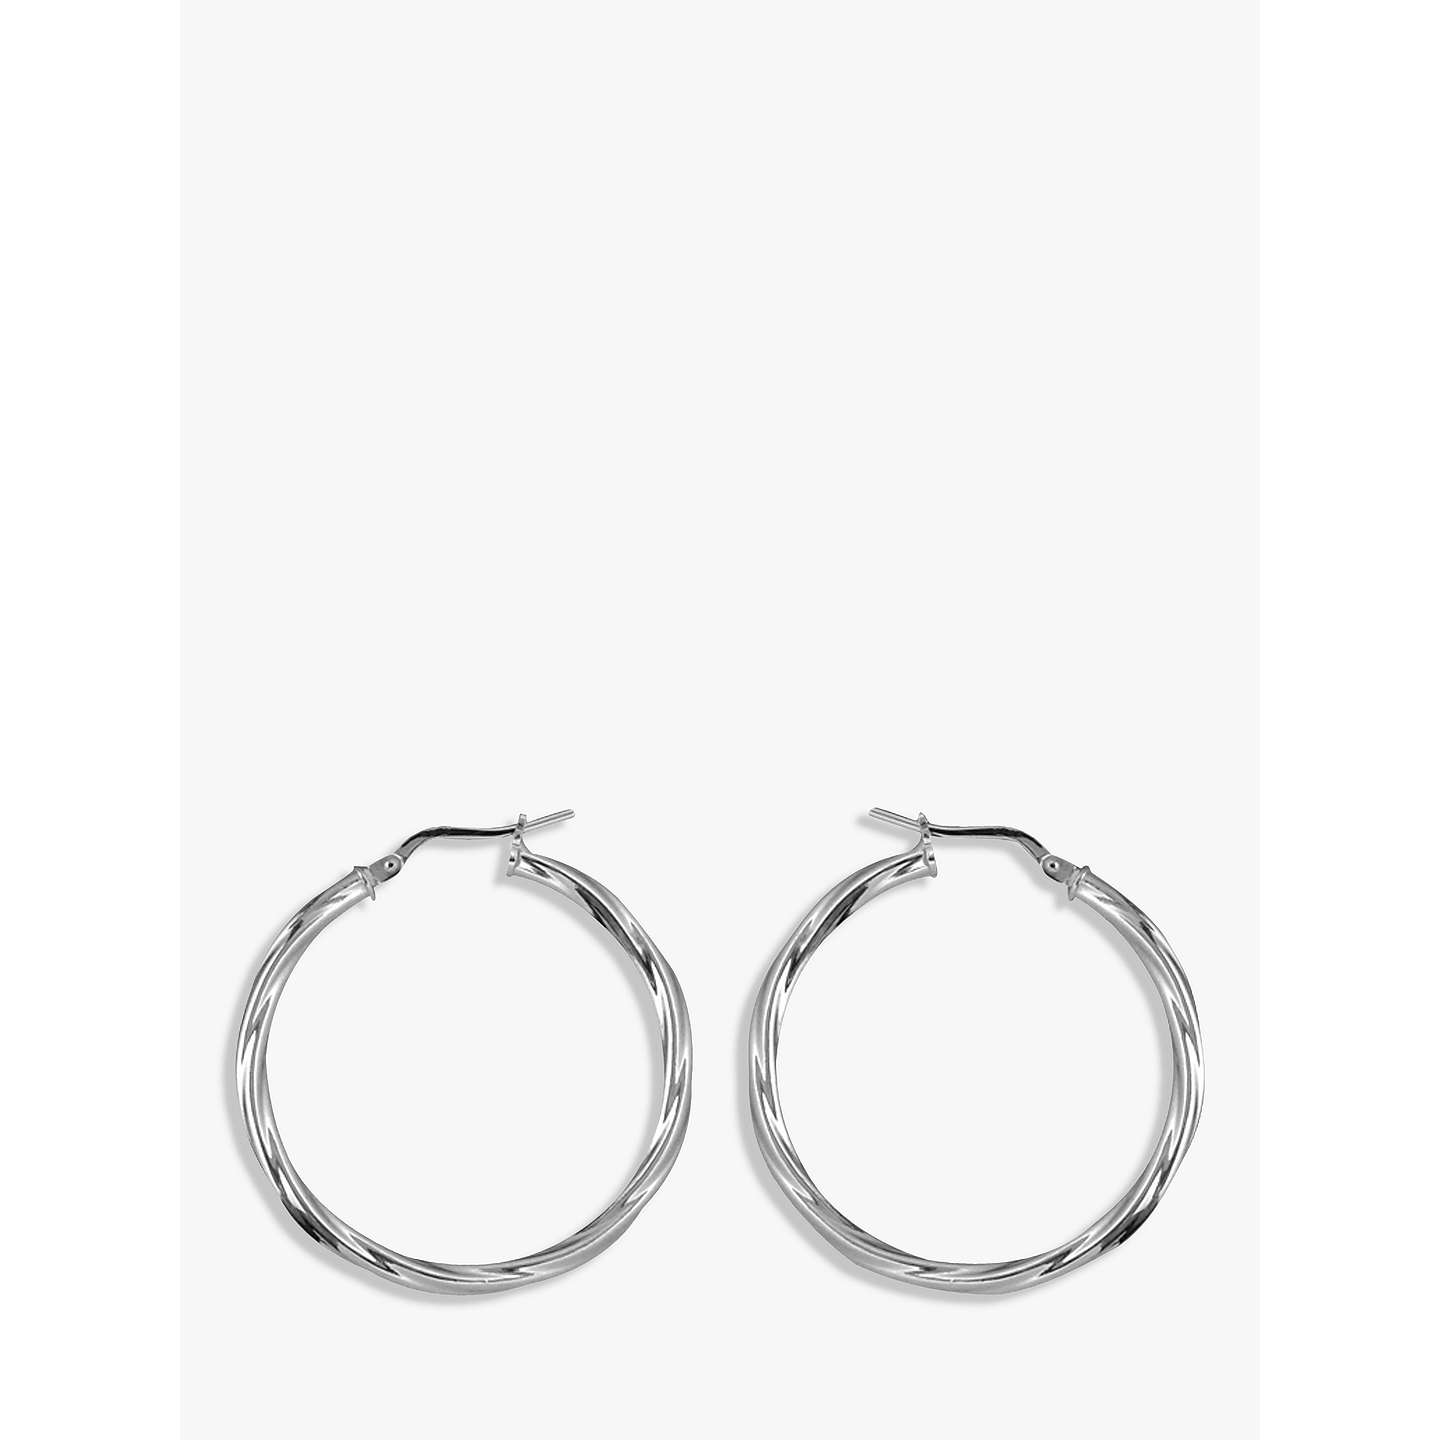 silver doppiat rhodium cerchi orecchini bianco white luxanty t negozio en double earrings circles hoop argento d wire liscio plated doublet in smooth